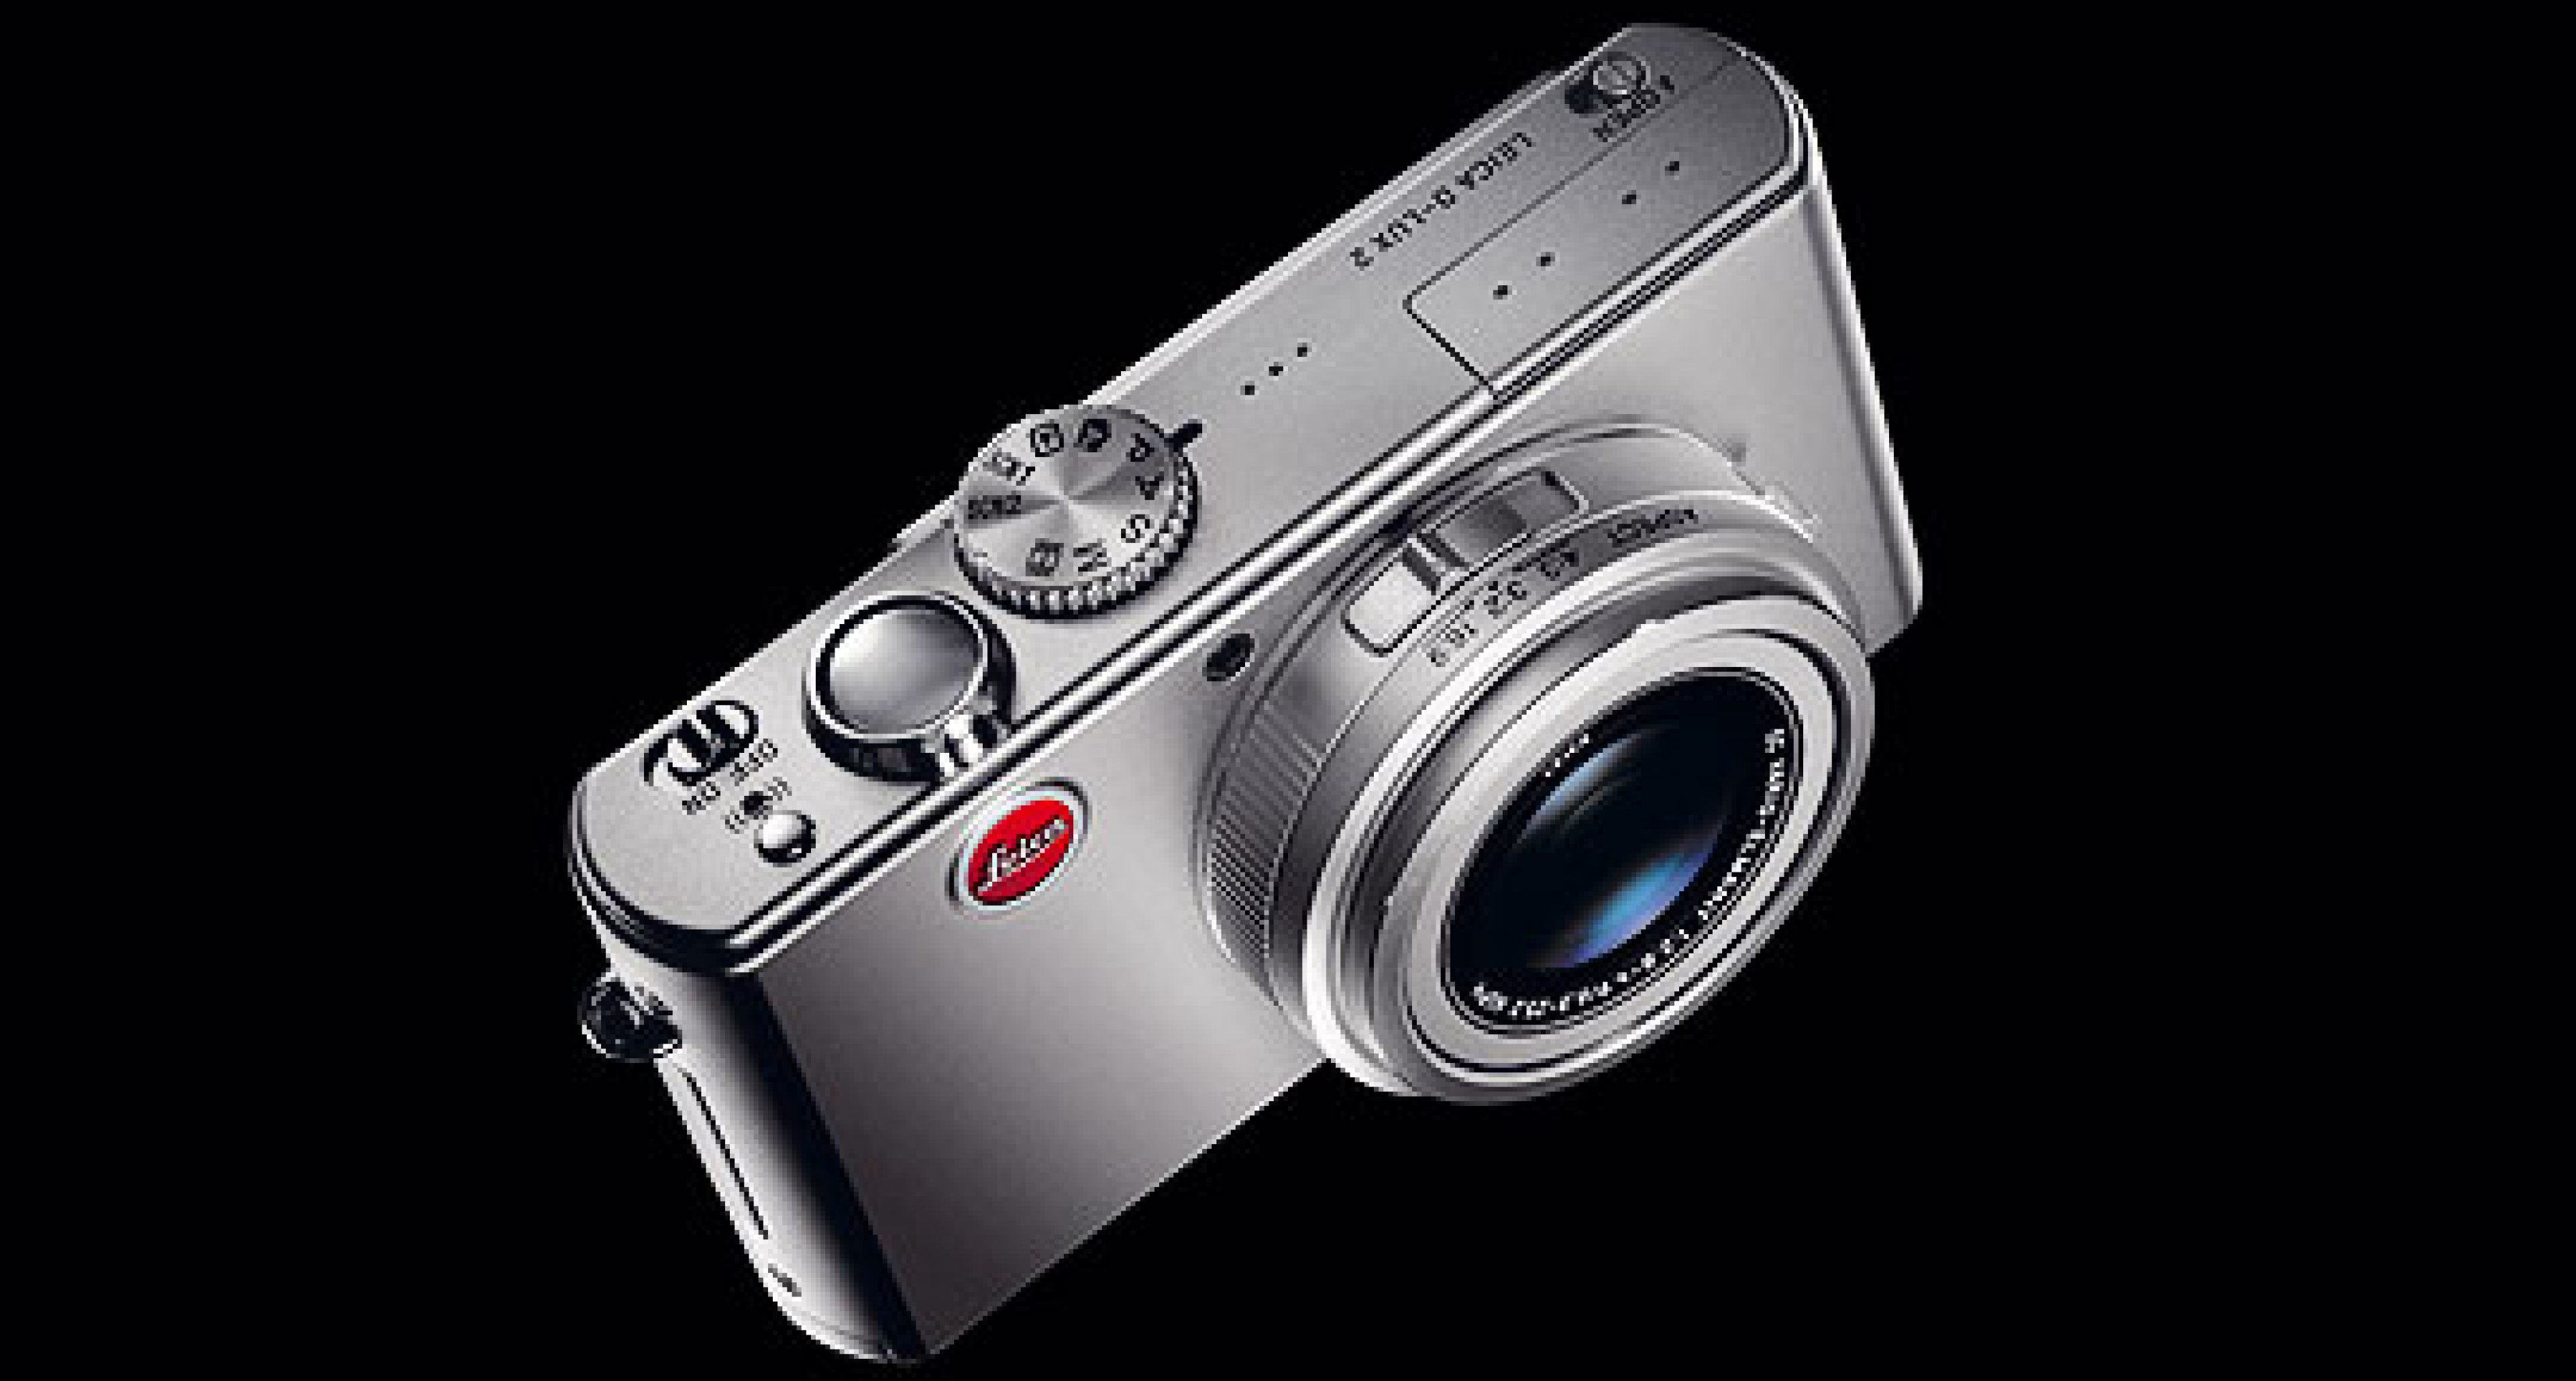 The new LEICA D-LUX 2